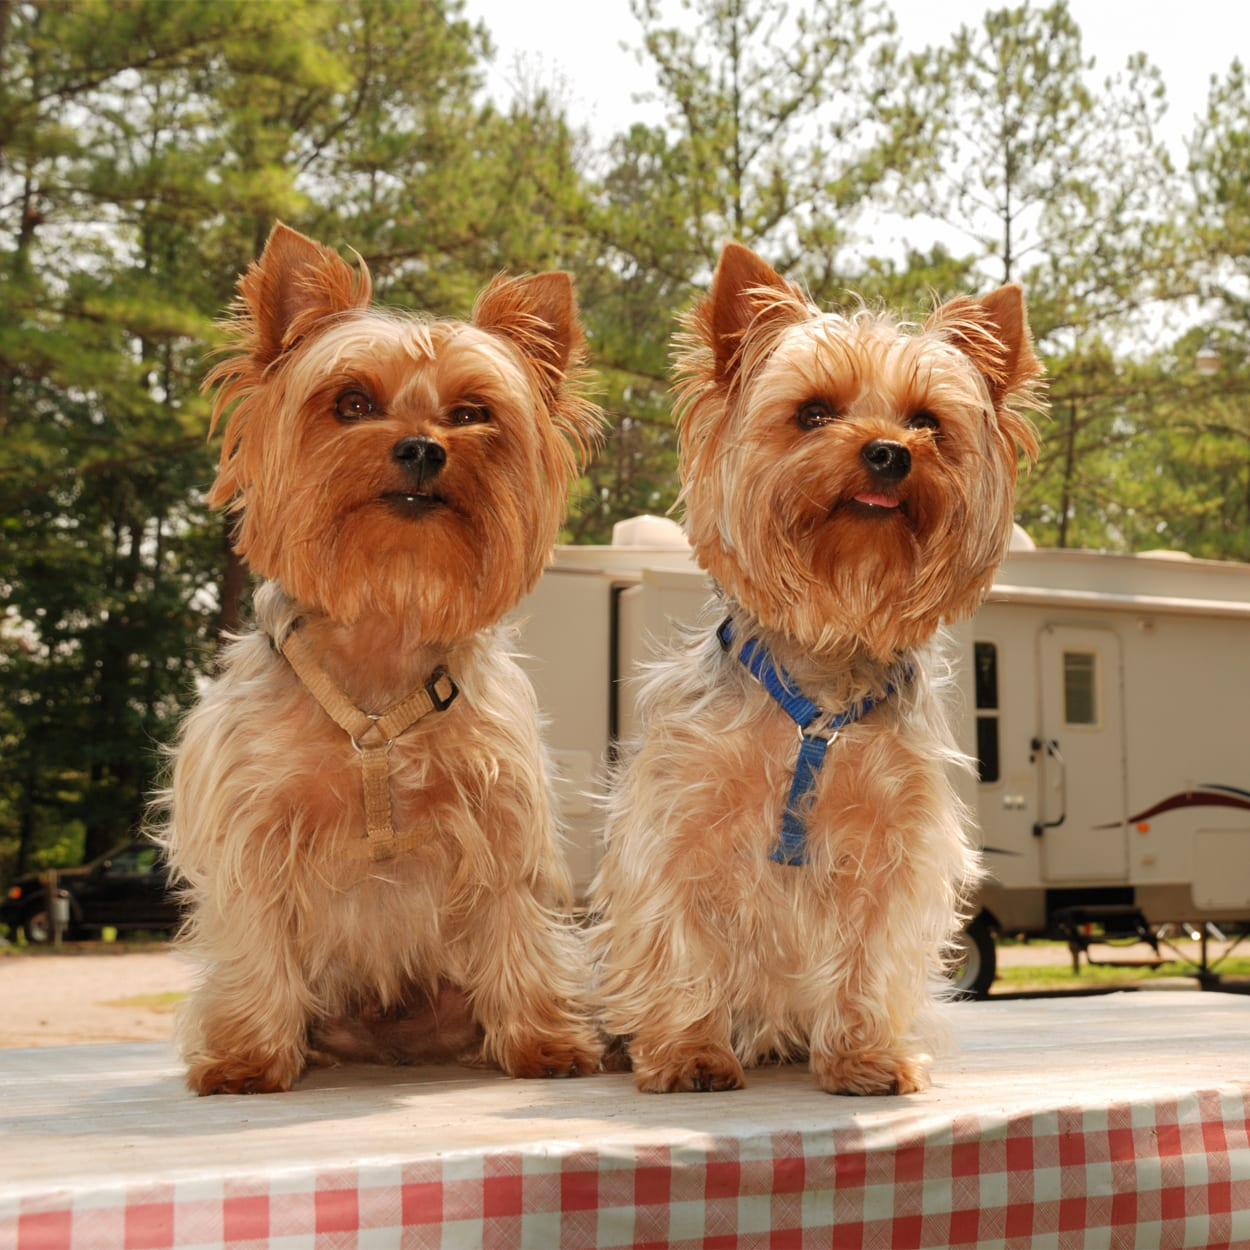 Camping Yorkies sitting on picnic table in campground.